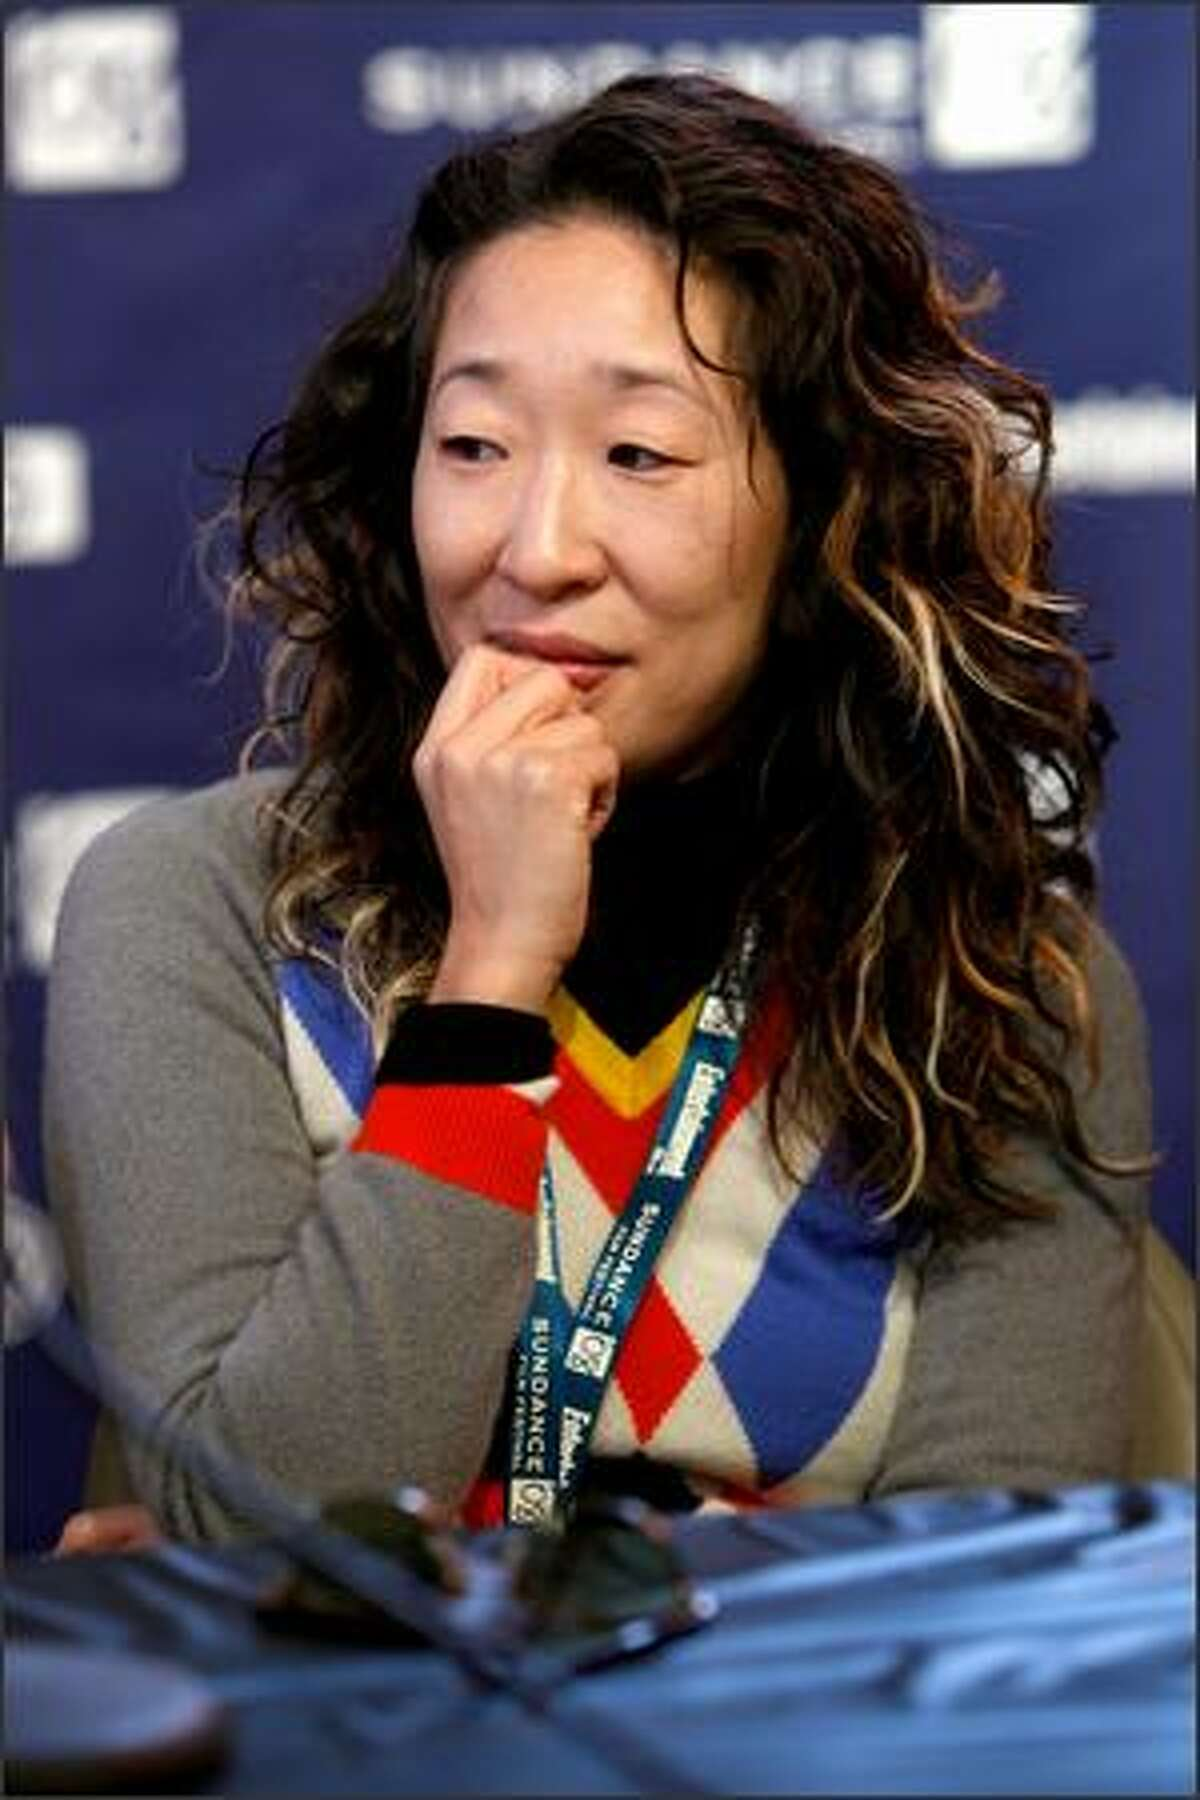 Dramatic competition juror, actress Sandra Oh, speaks at the jurors' press conference held at the Sundance House during the 2008 Sundance Film Festival in Park City, Utah.